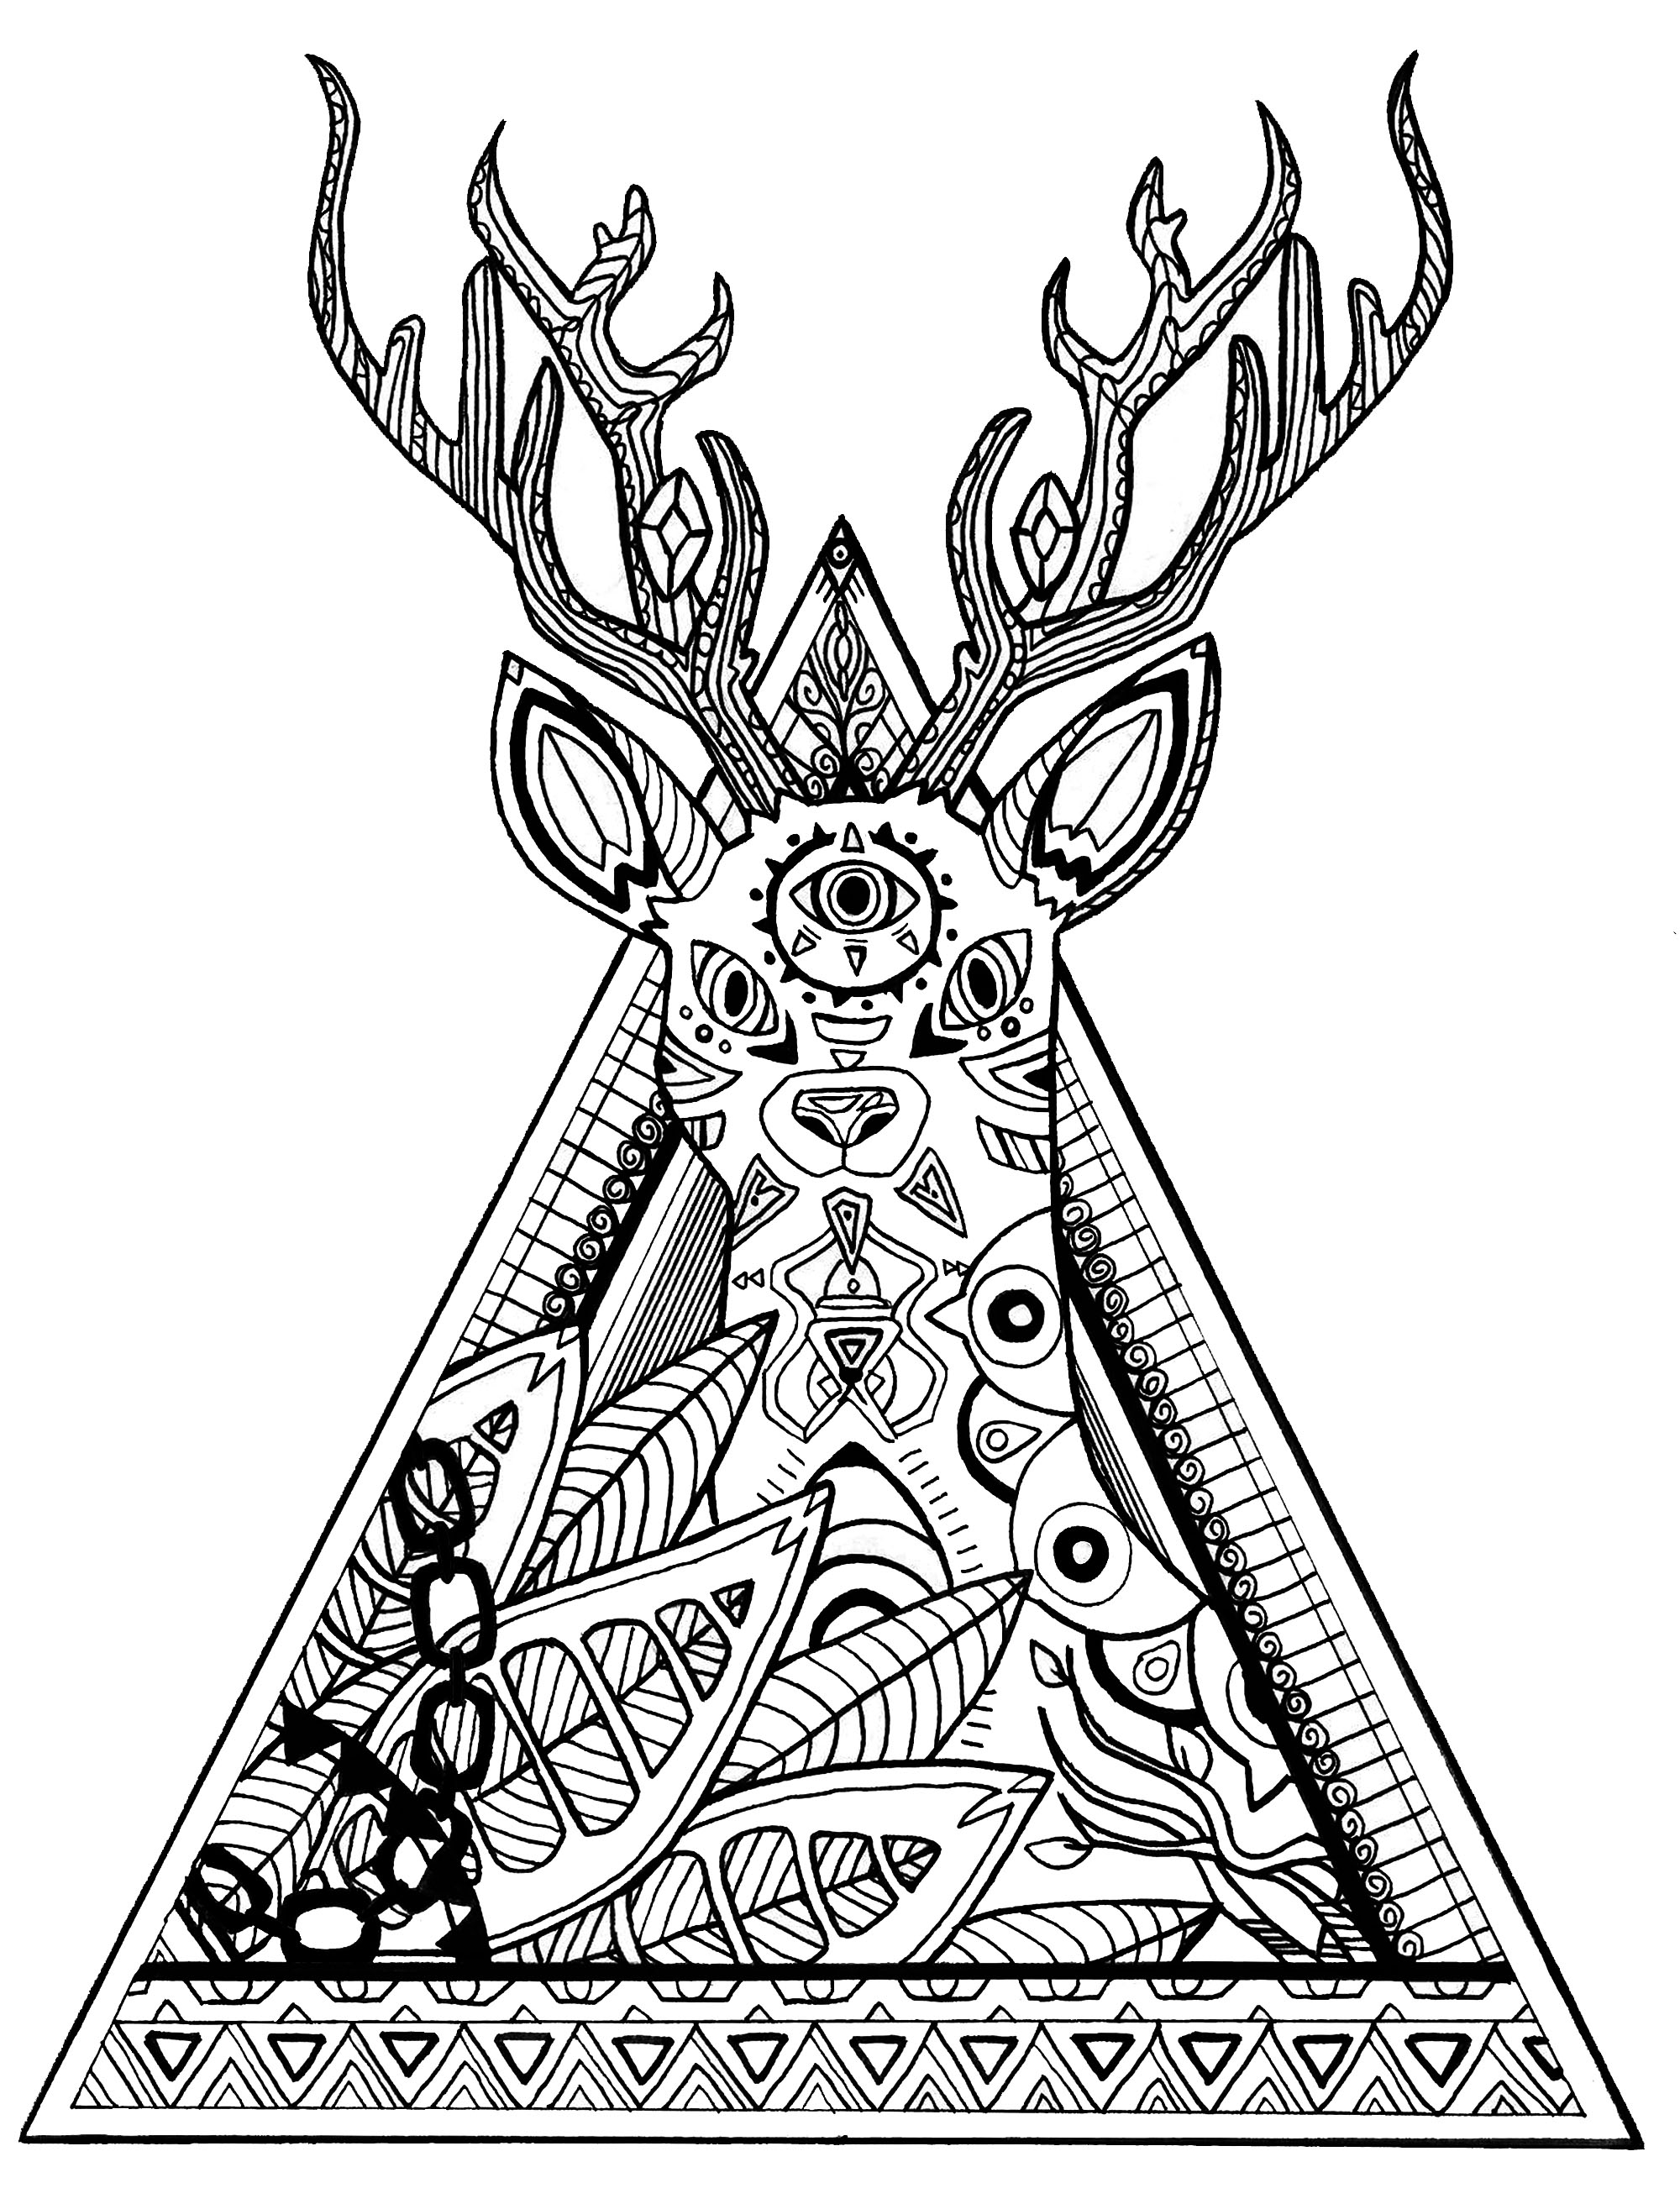 Deer in a triangle - Deers Adult Coloring Pages